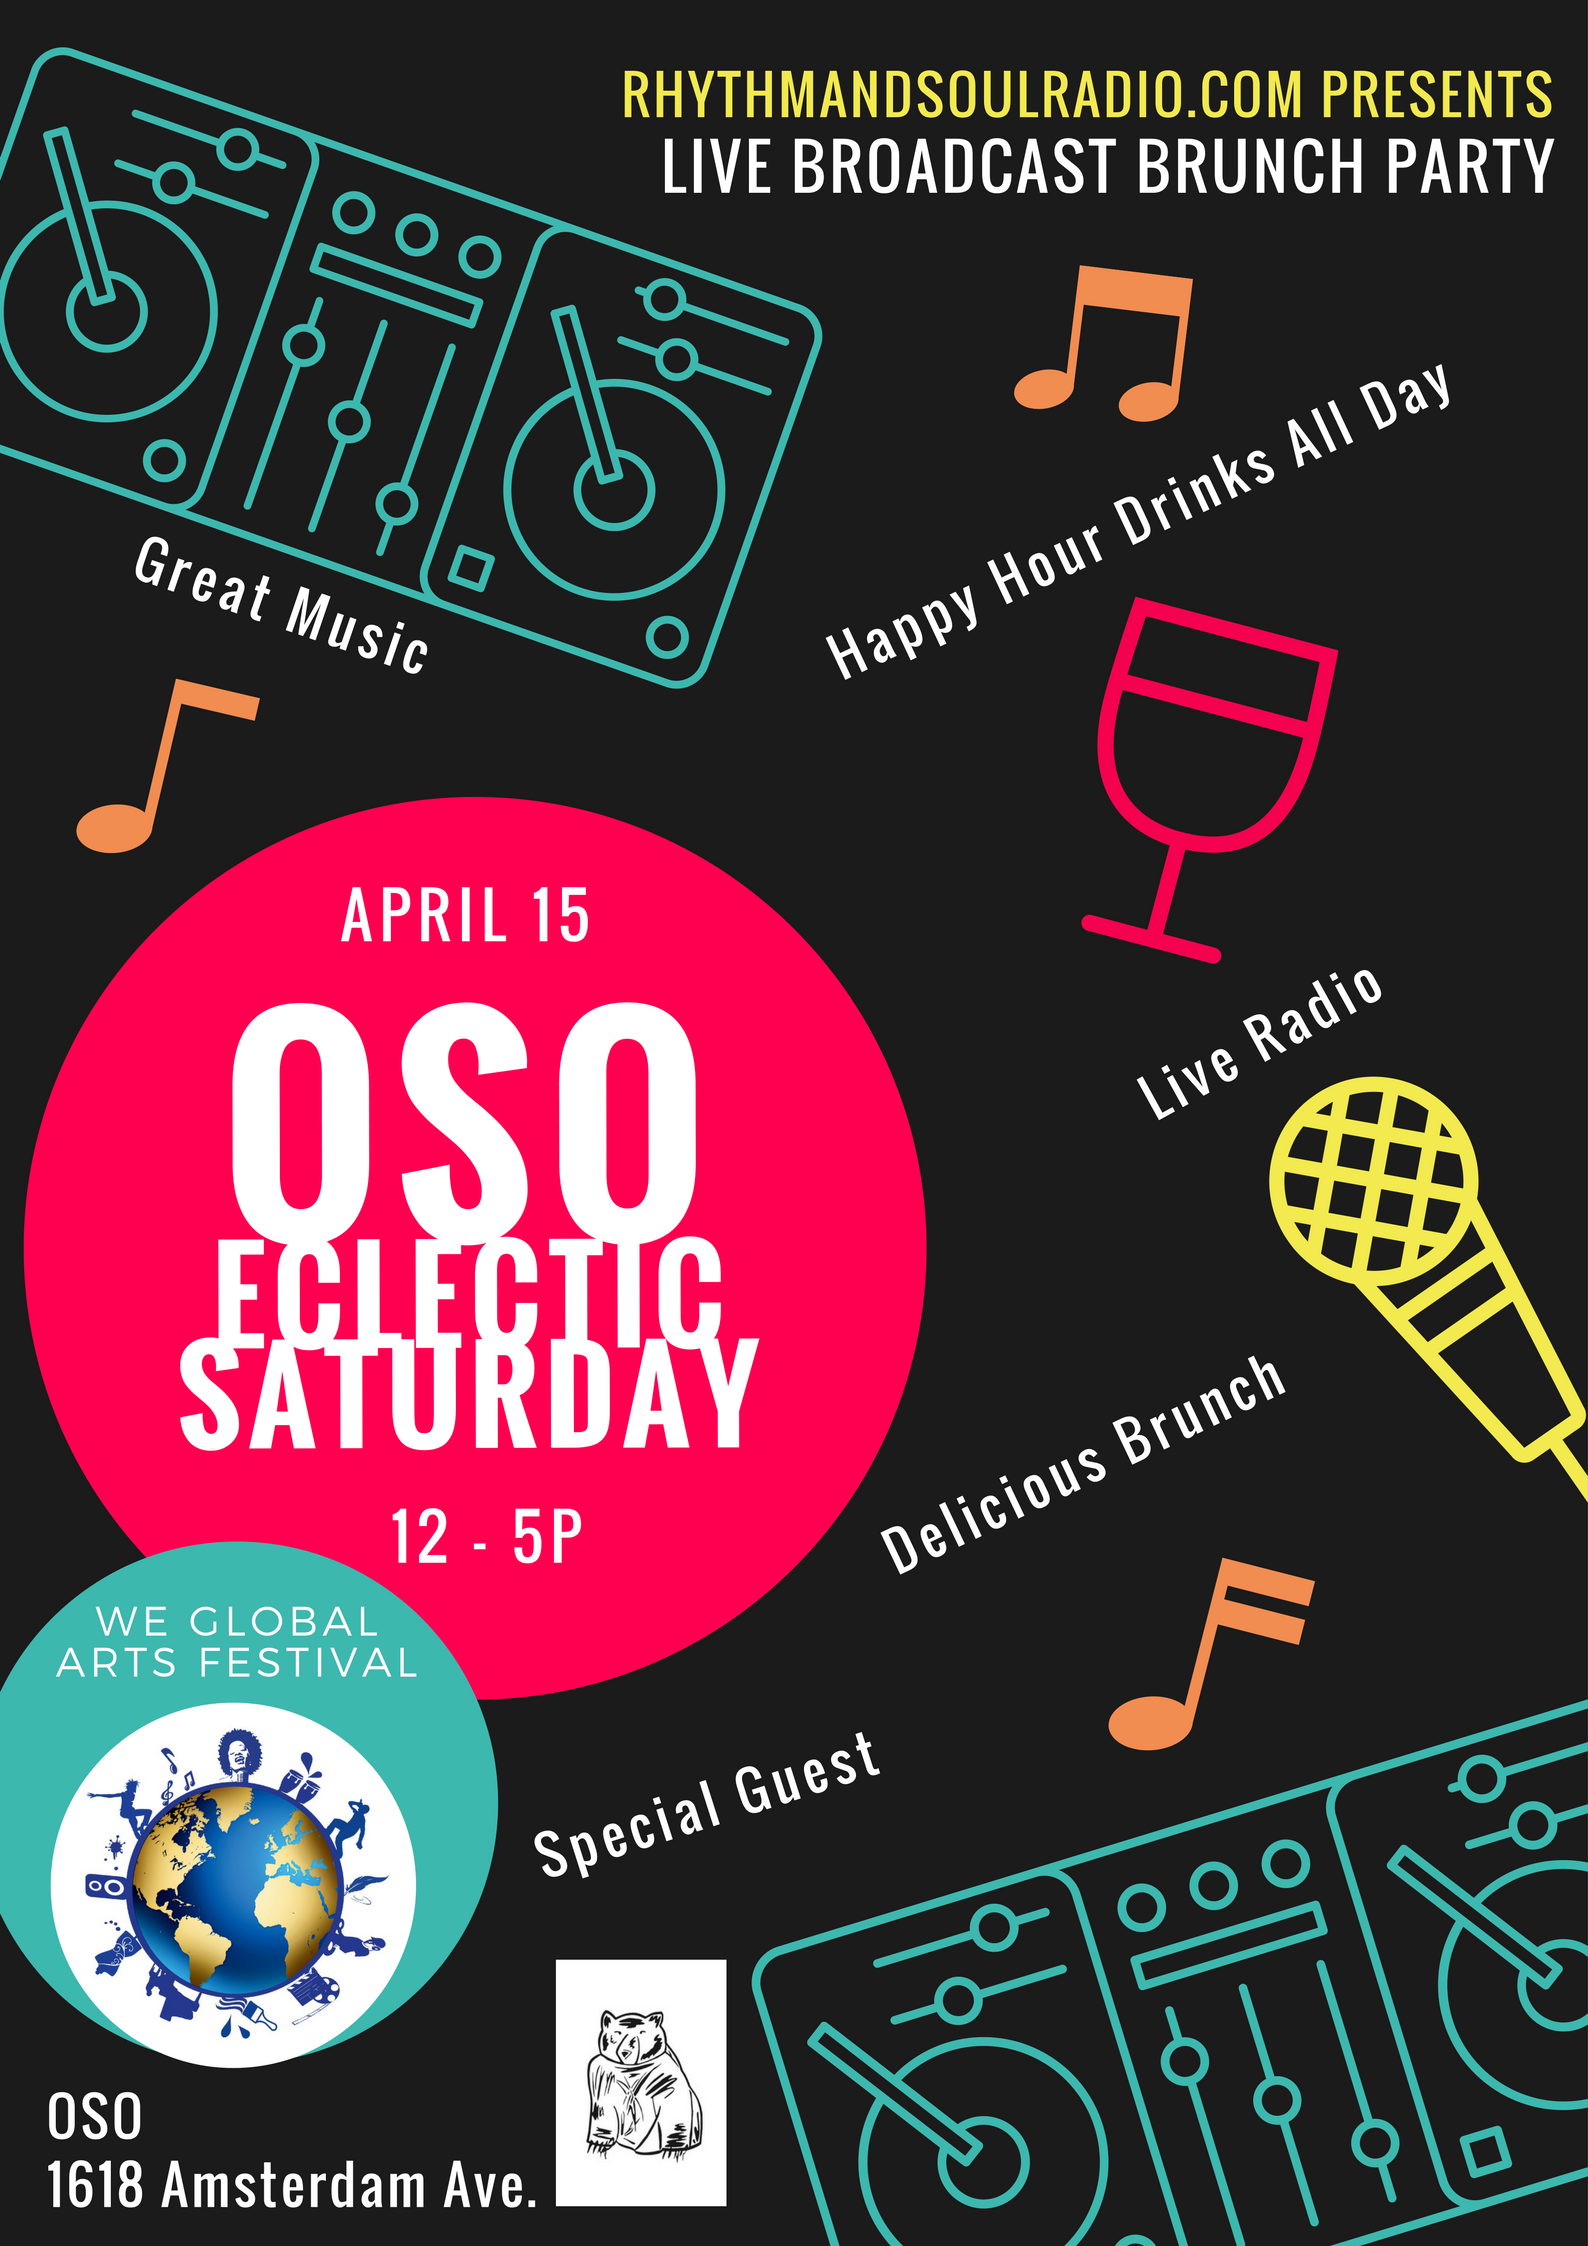 Oso Eclectic Saturday Brunch flyer